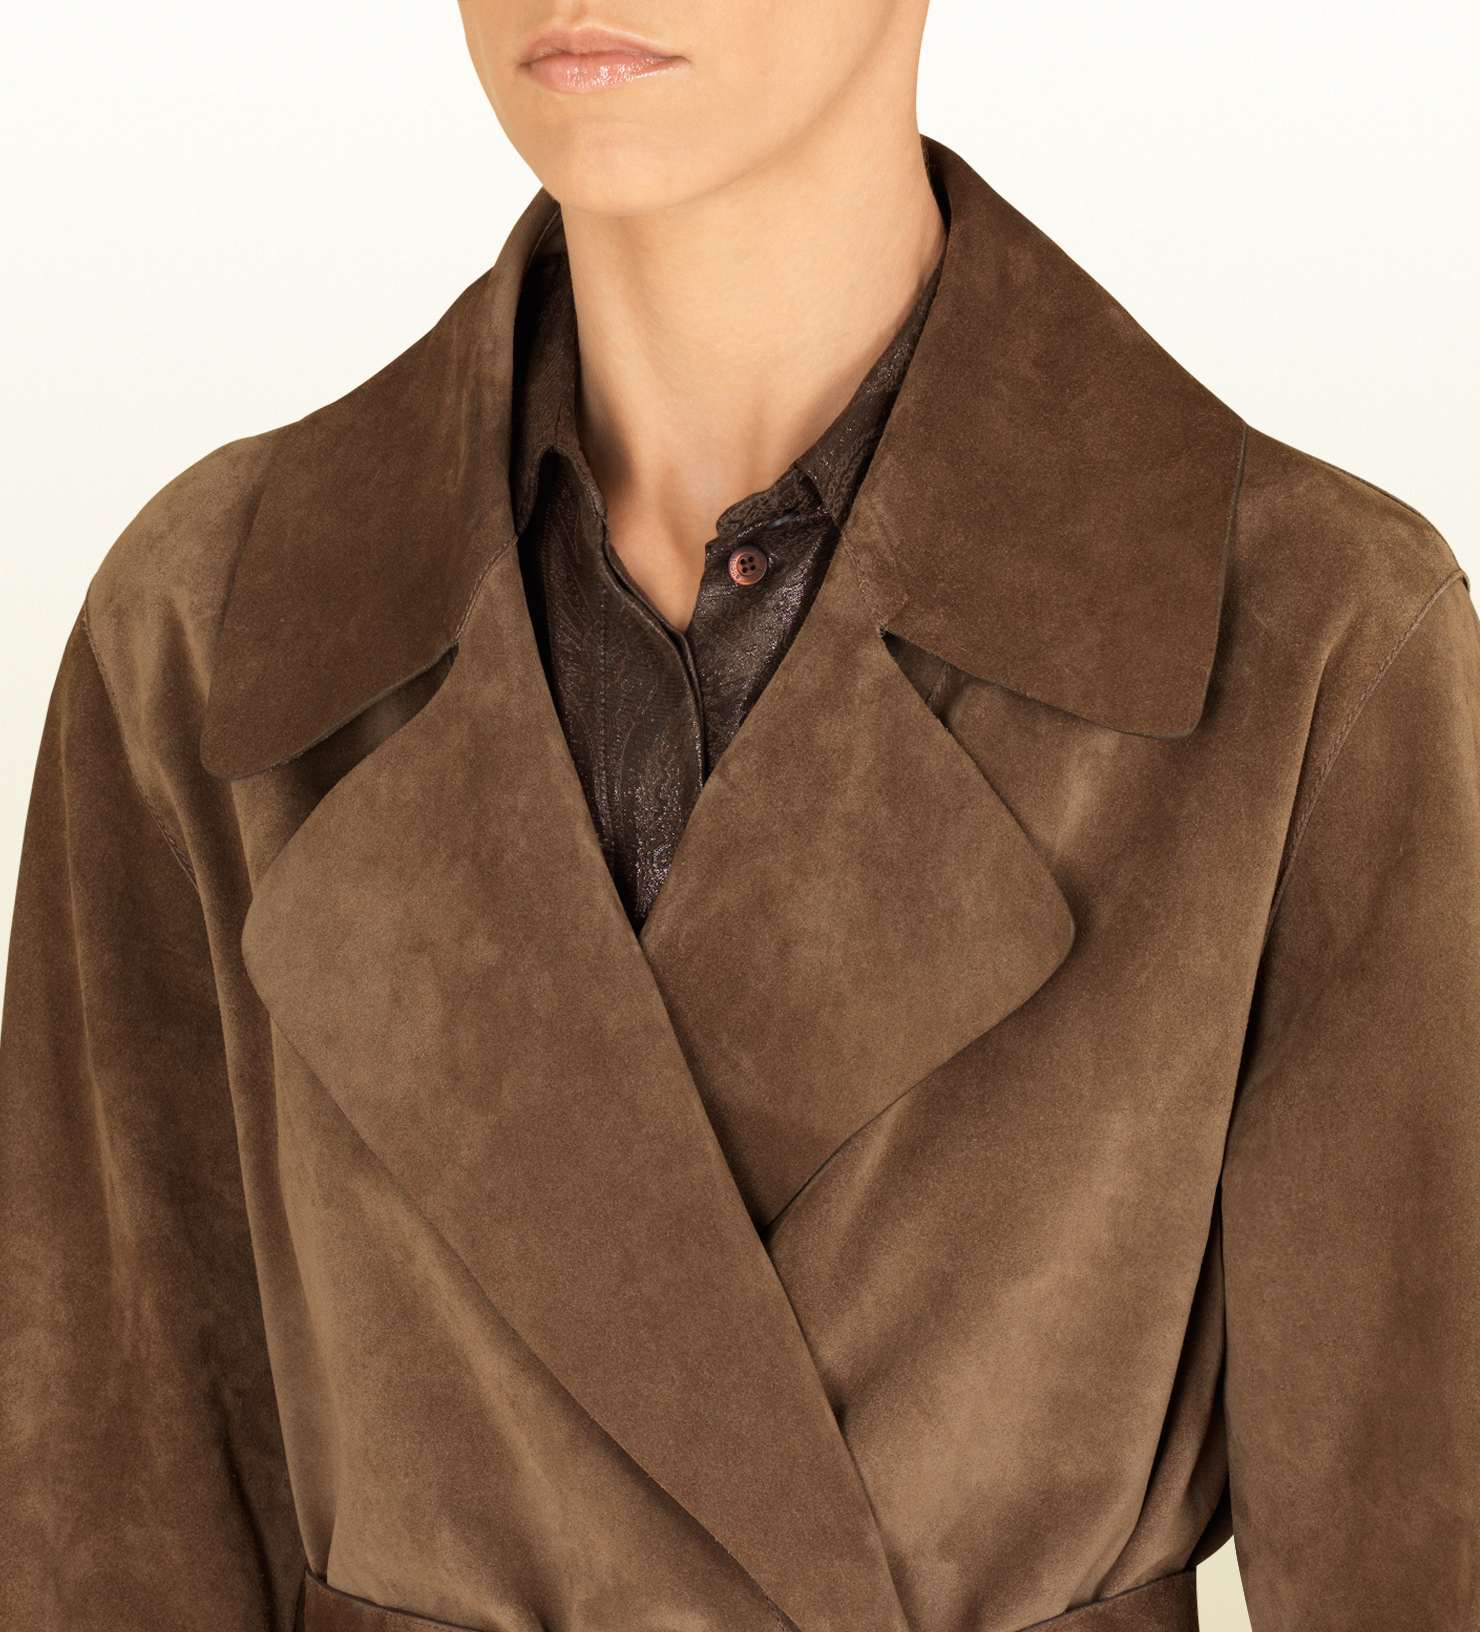 c4ad44eb9 Gucci Ash Brown Suede Belted Trench Coat in Brown for Men - Lyst